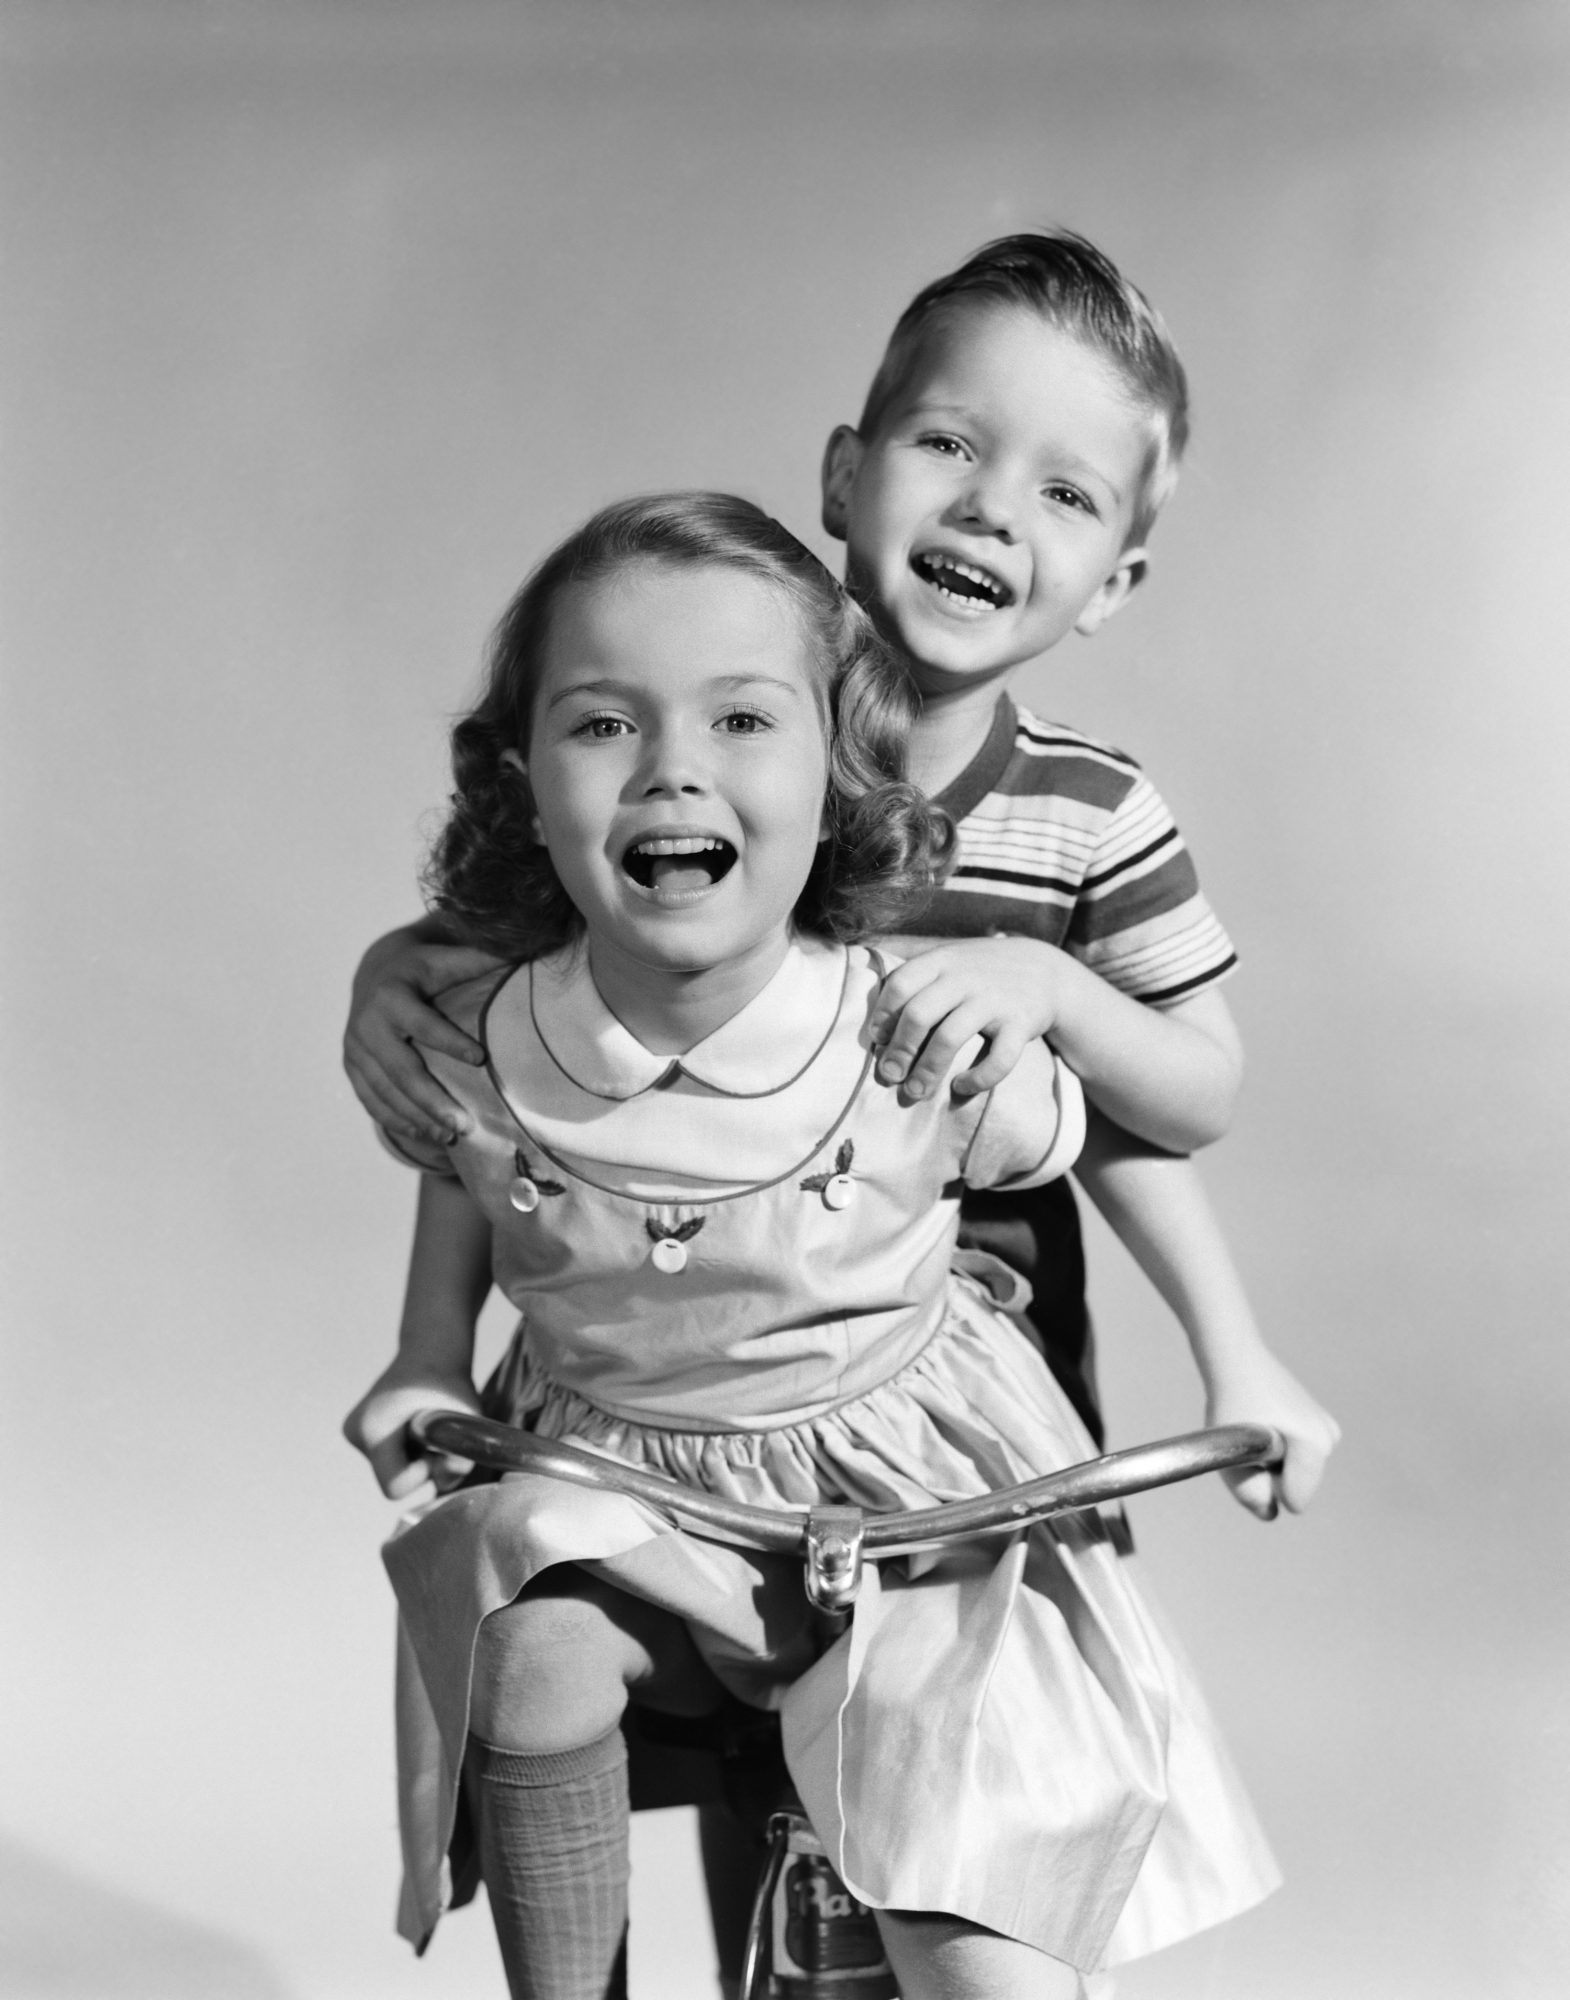 Girl Riding Bike with Boy Standing Behind Her